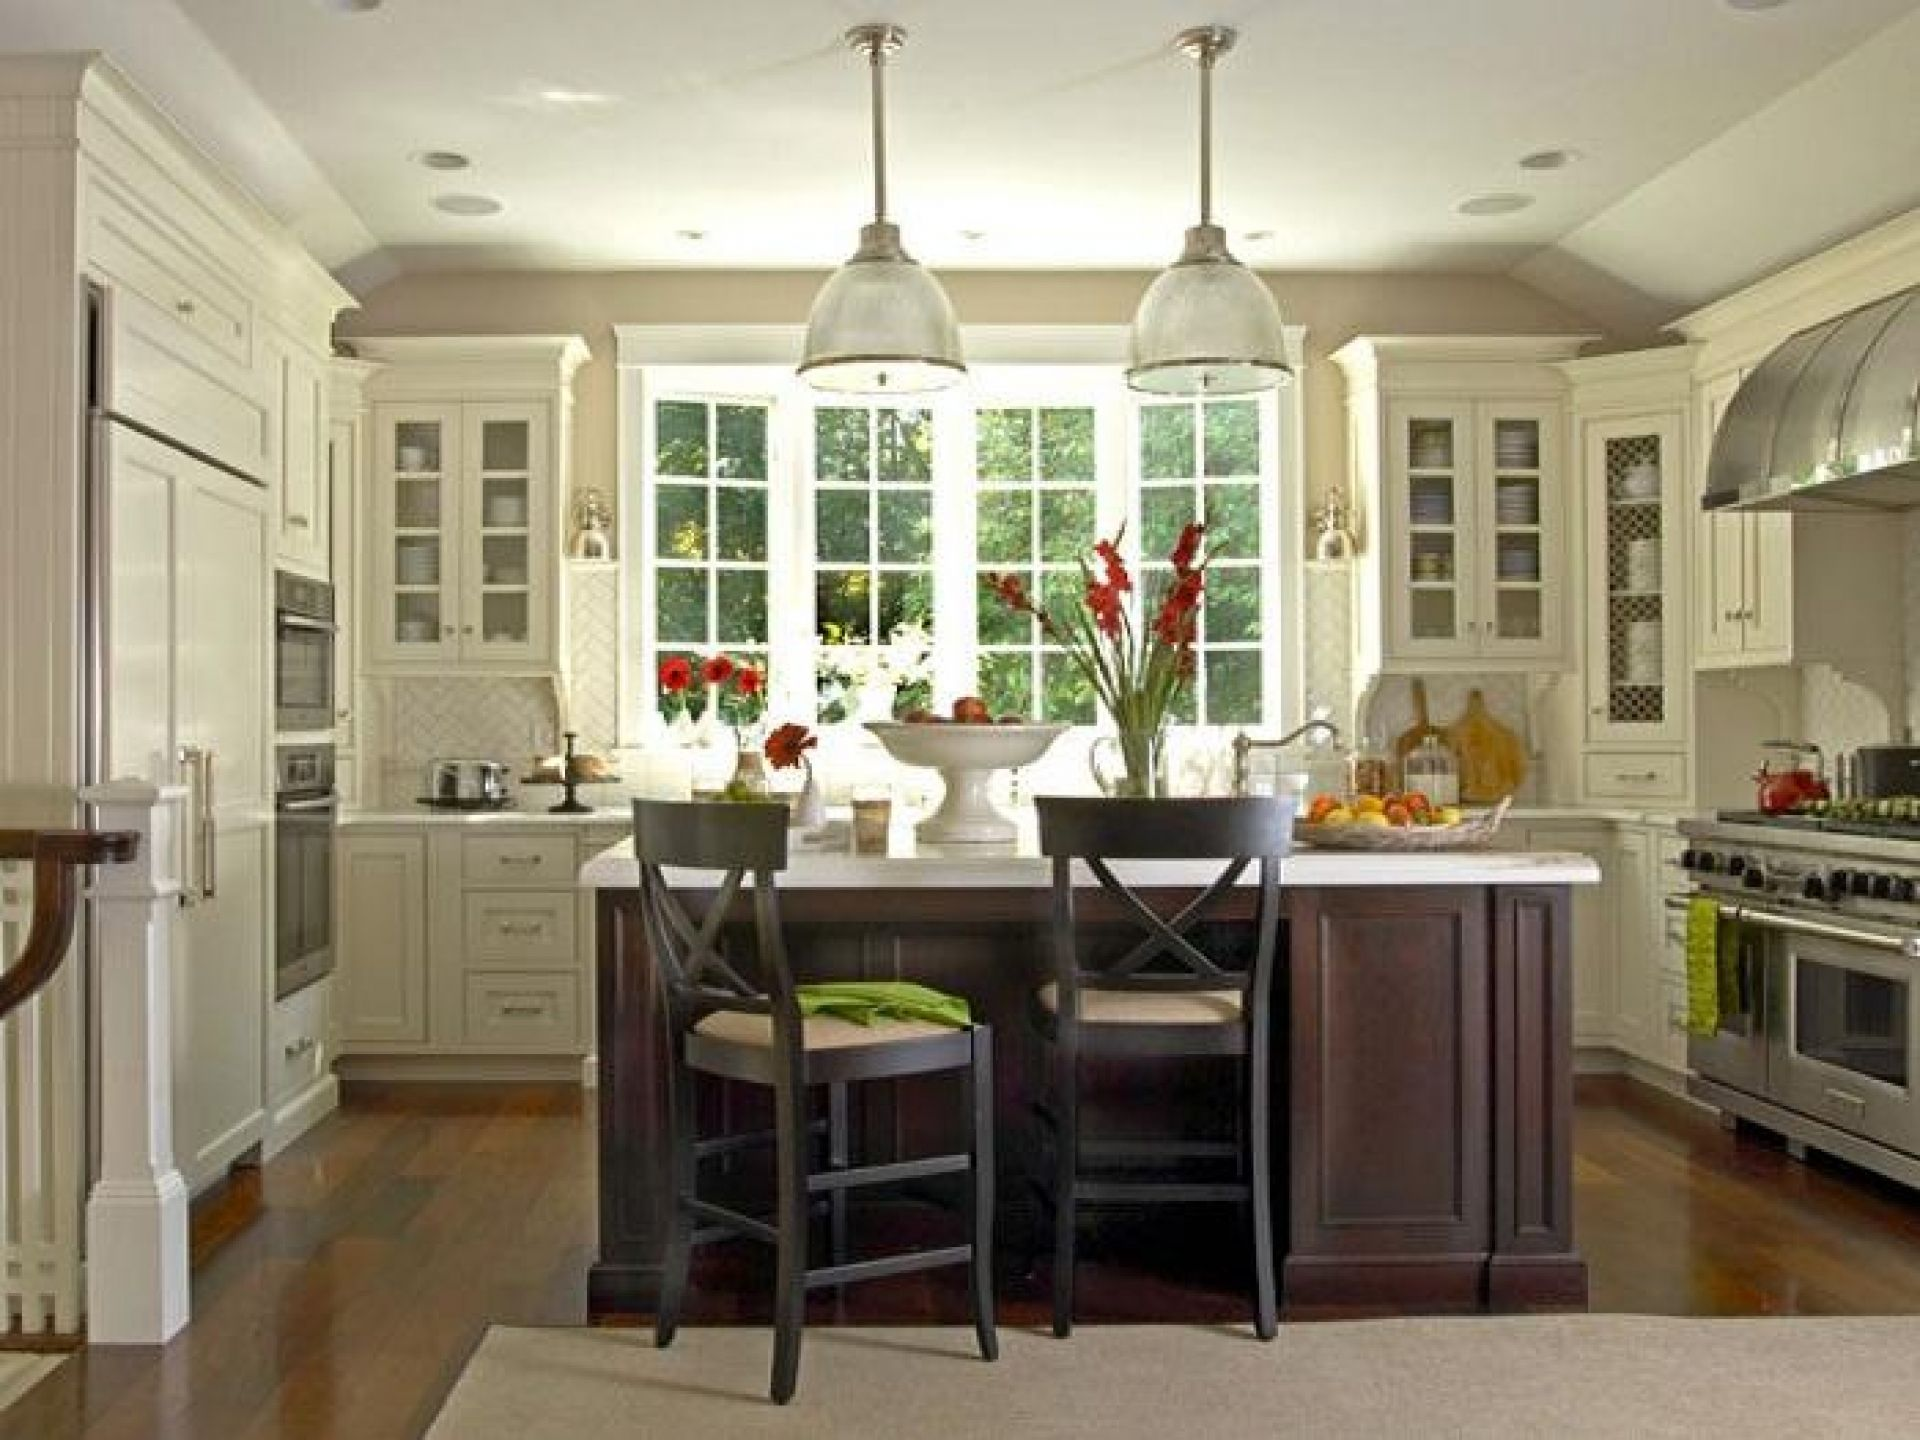 Modern country kitchen u shape design with white cabinet for White country kitchen ideas